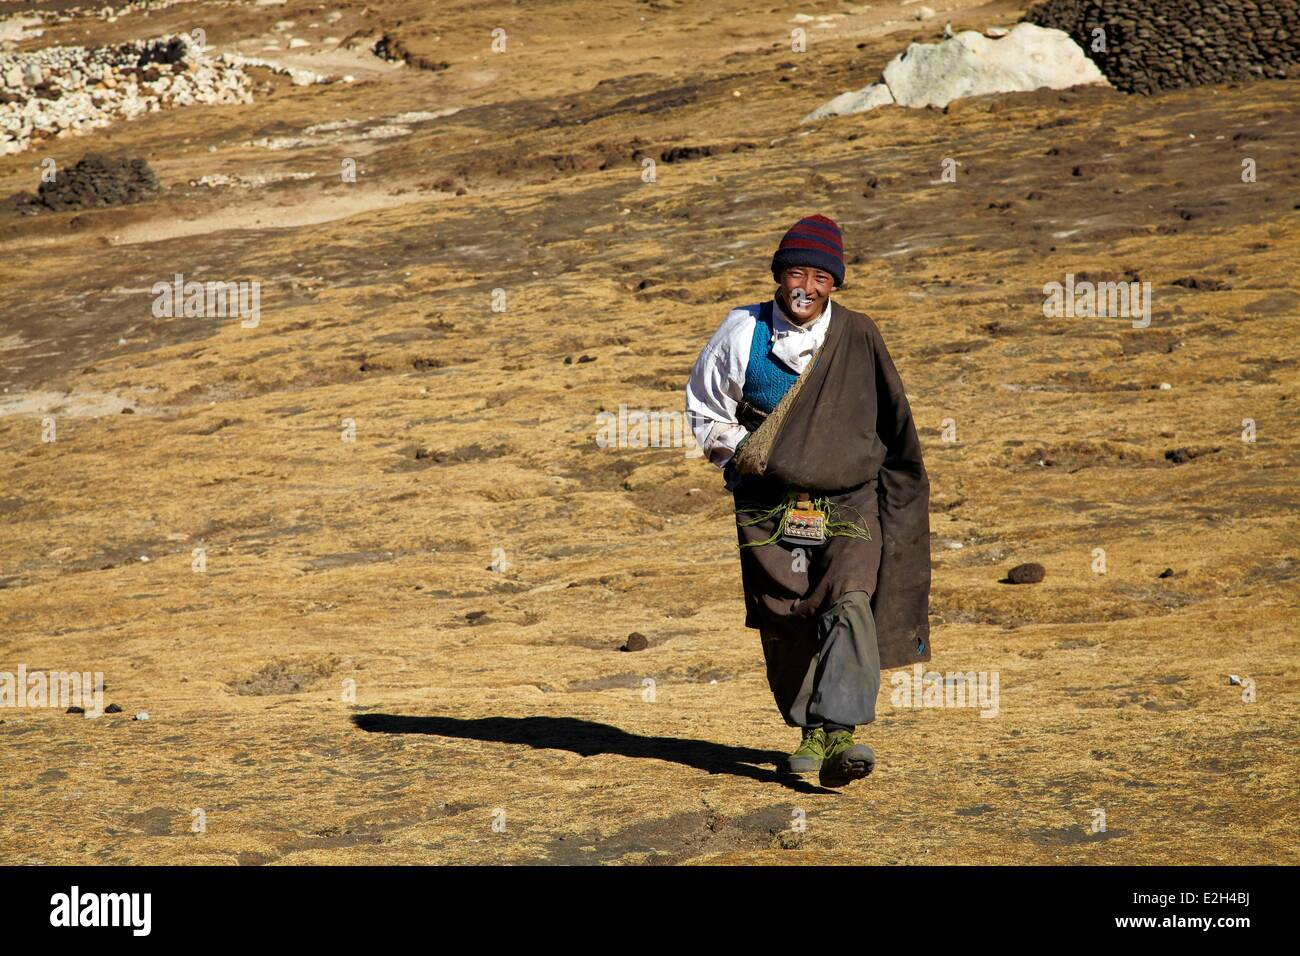 China Tibet yaks shepherd on Shogula pass (5300m) on Lhasa to Shigatze road - Stock Image